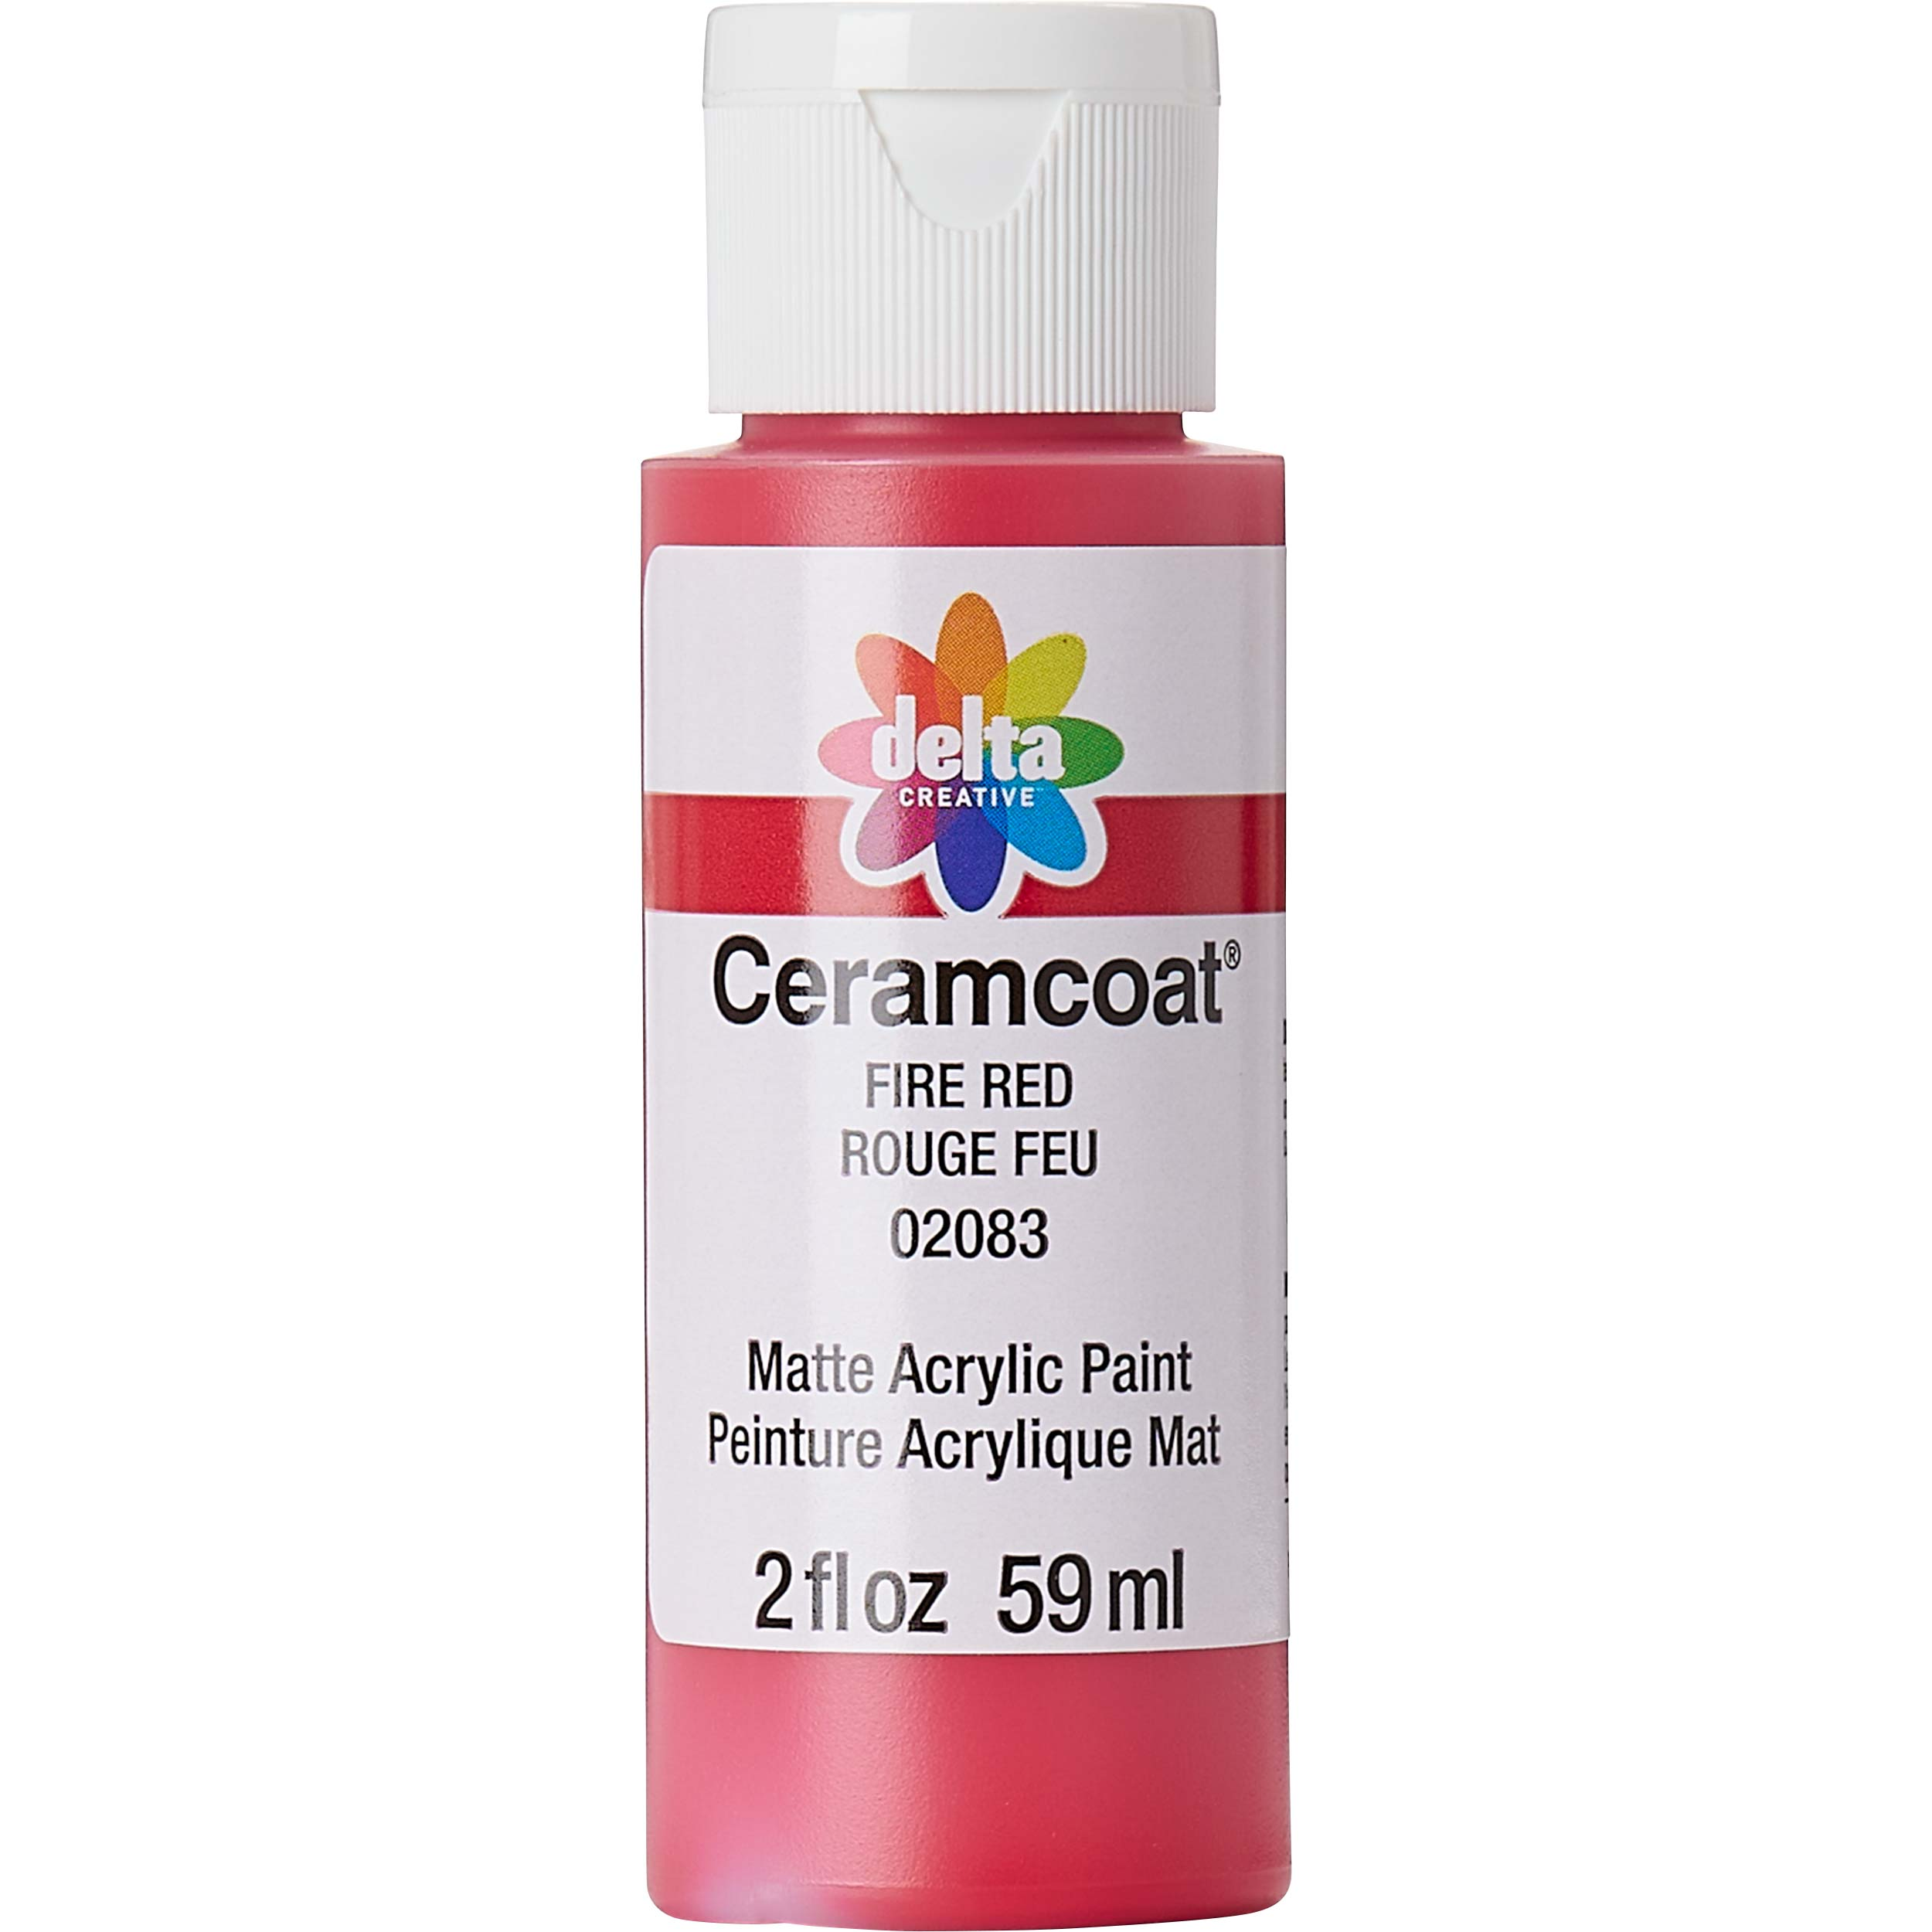 Delta Ceramcoat ® Acrylic Paint - Fire Red, 2 oz.